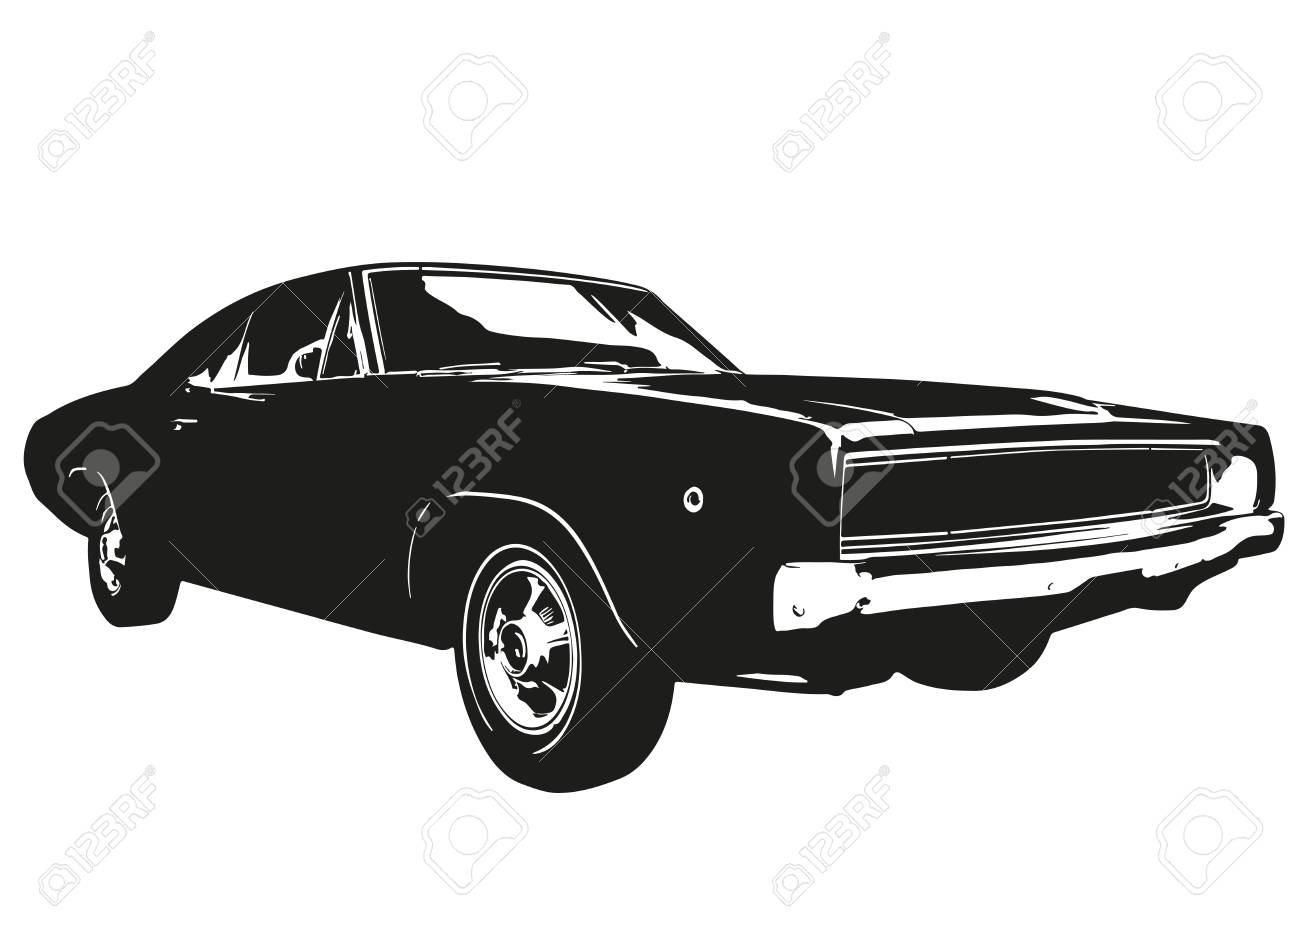 American Vintage Muscle Car Silhouette Royalty Free Cliparts